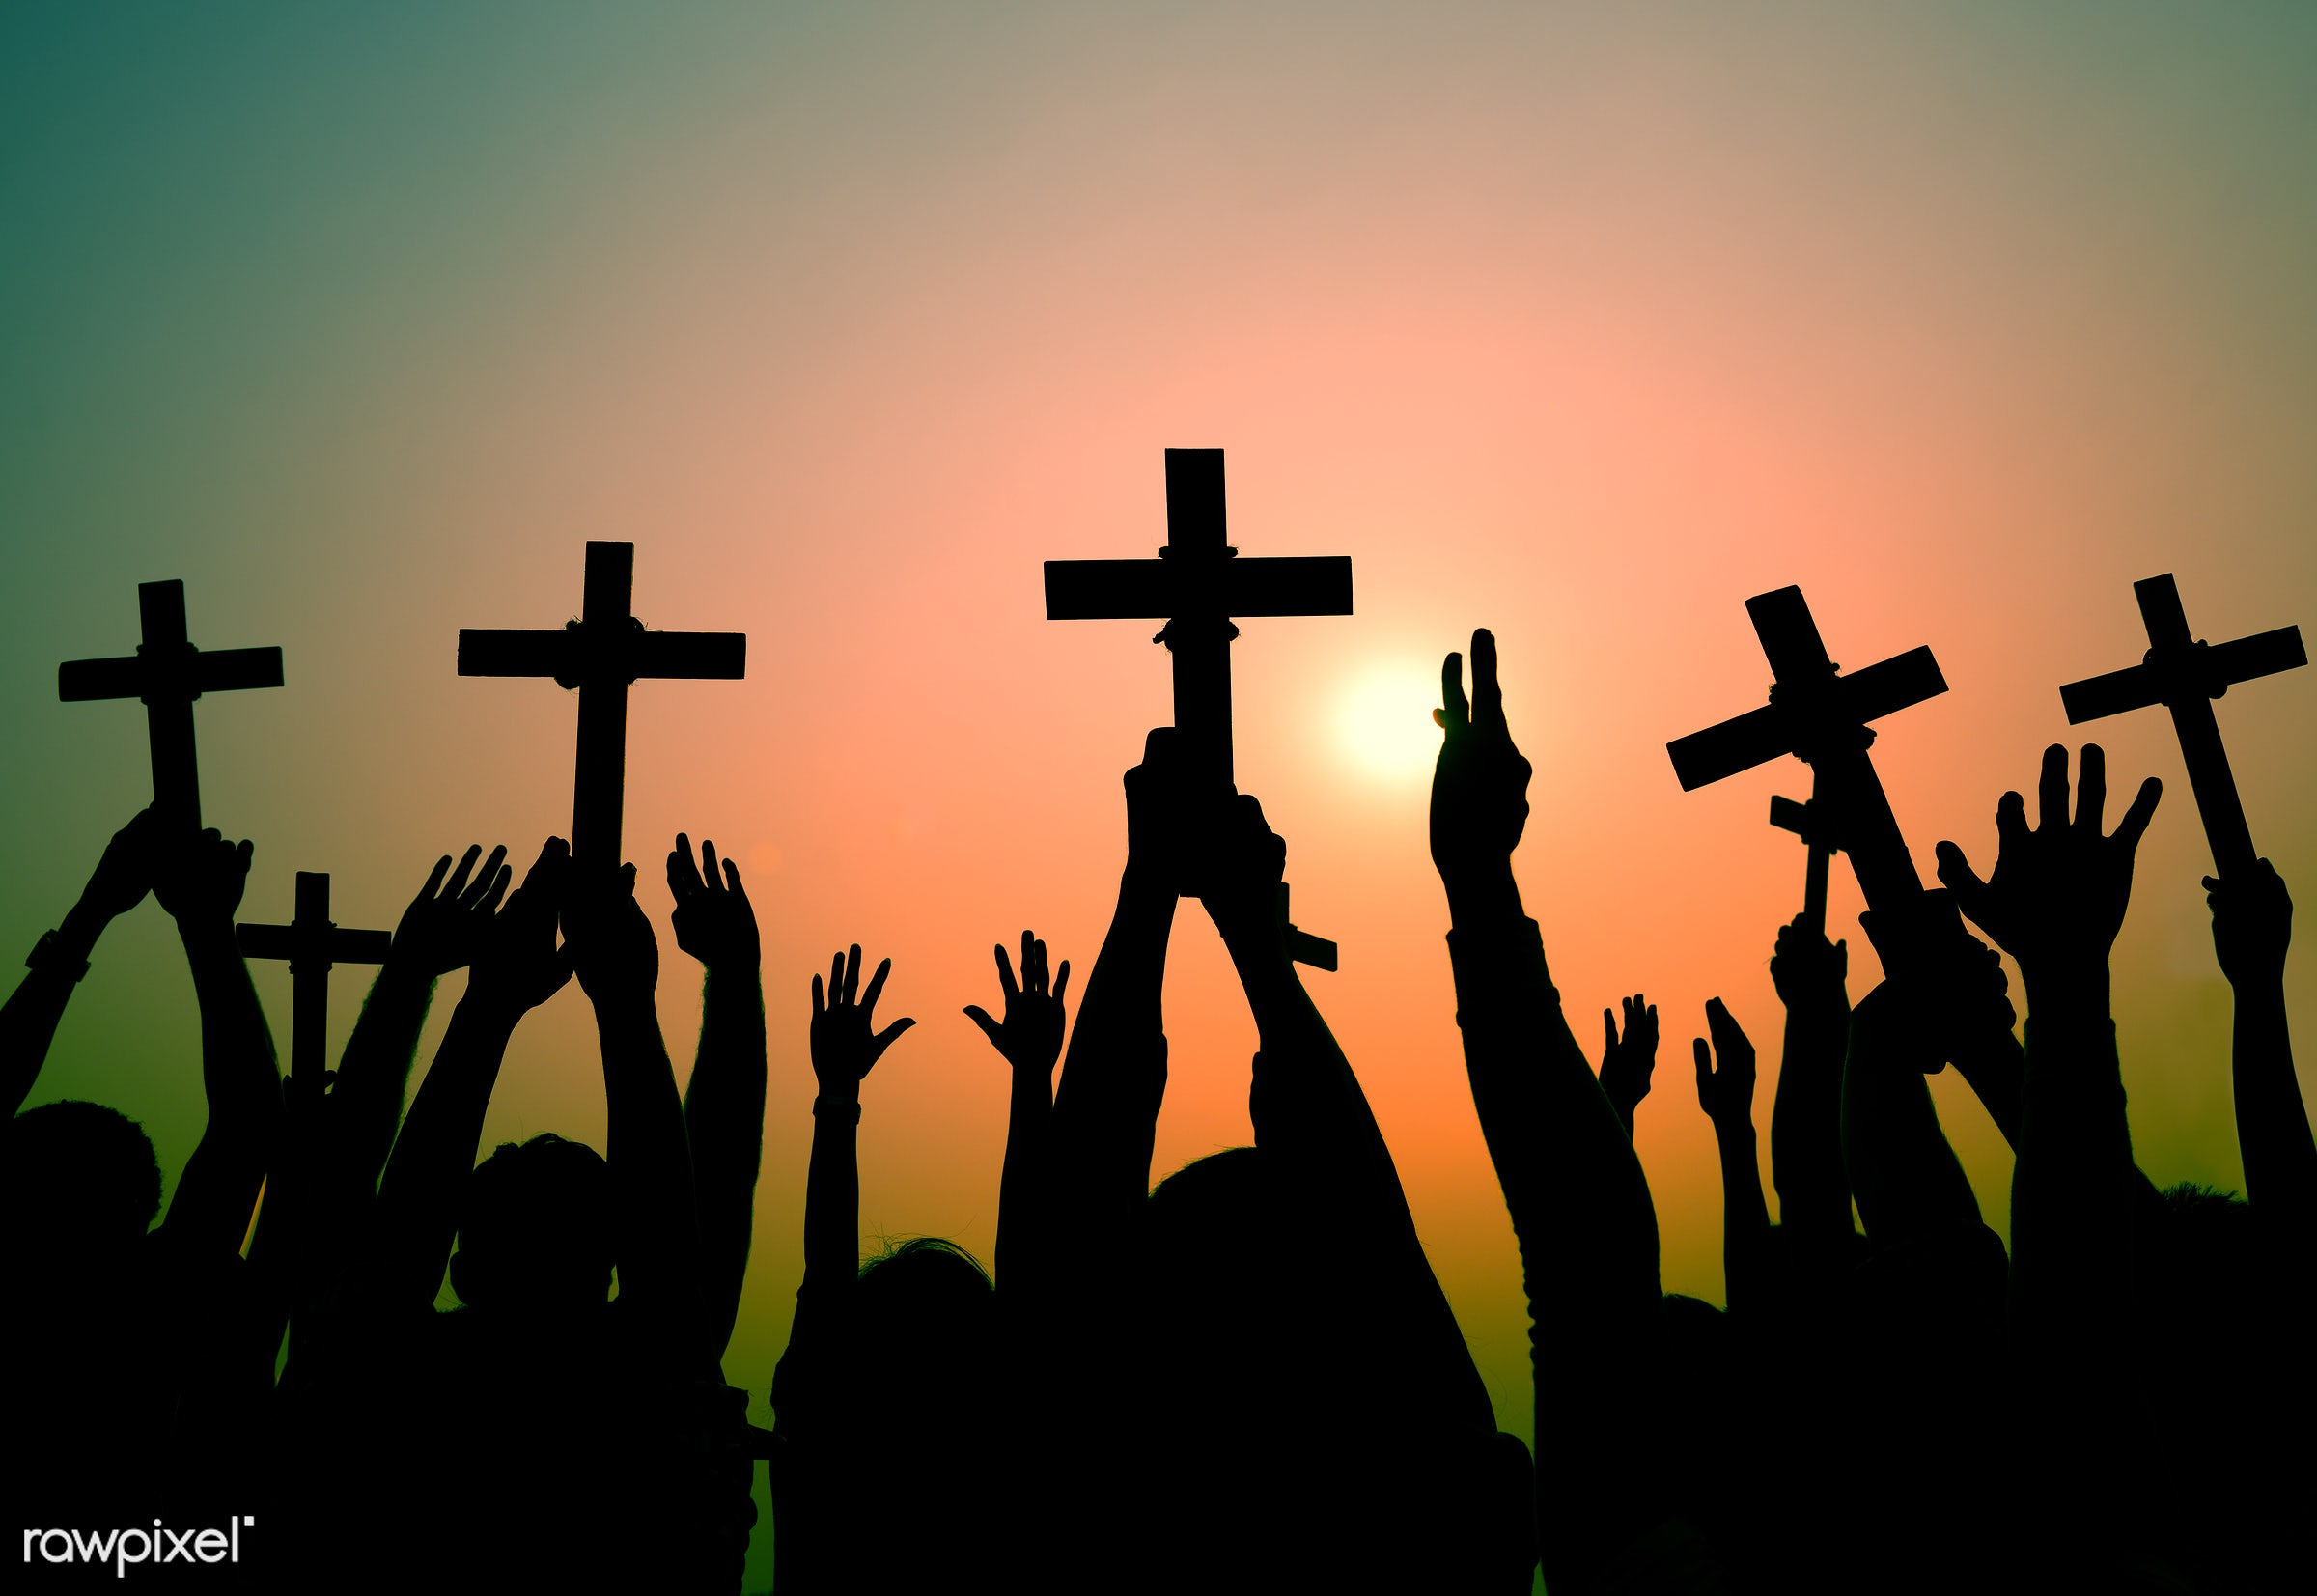 holding, holidays and celebrations, arm raised, belief, cemetery, christianity, concepts and ideas, cross, crucifix, death,...